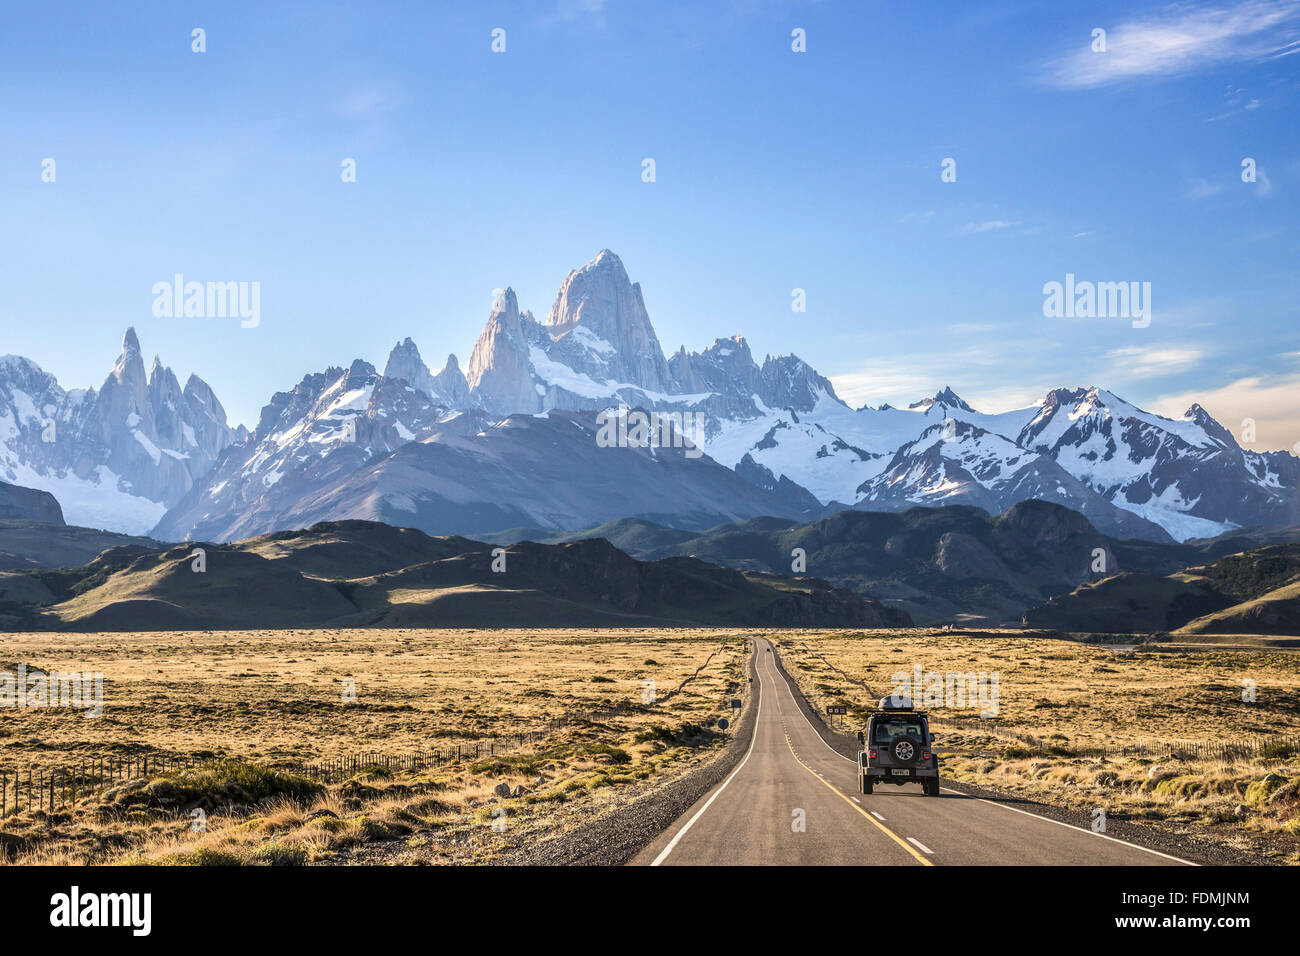 Jeep traveling on National Route 40 overlooking Monte Fitz Roy also known as Chalten - Stock Image